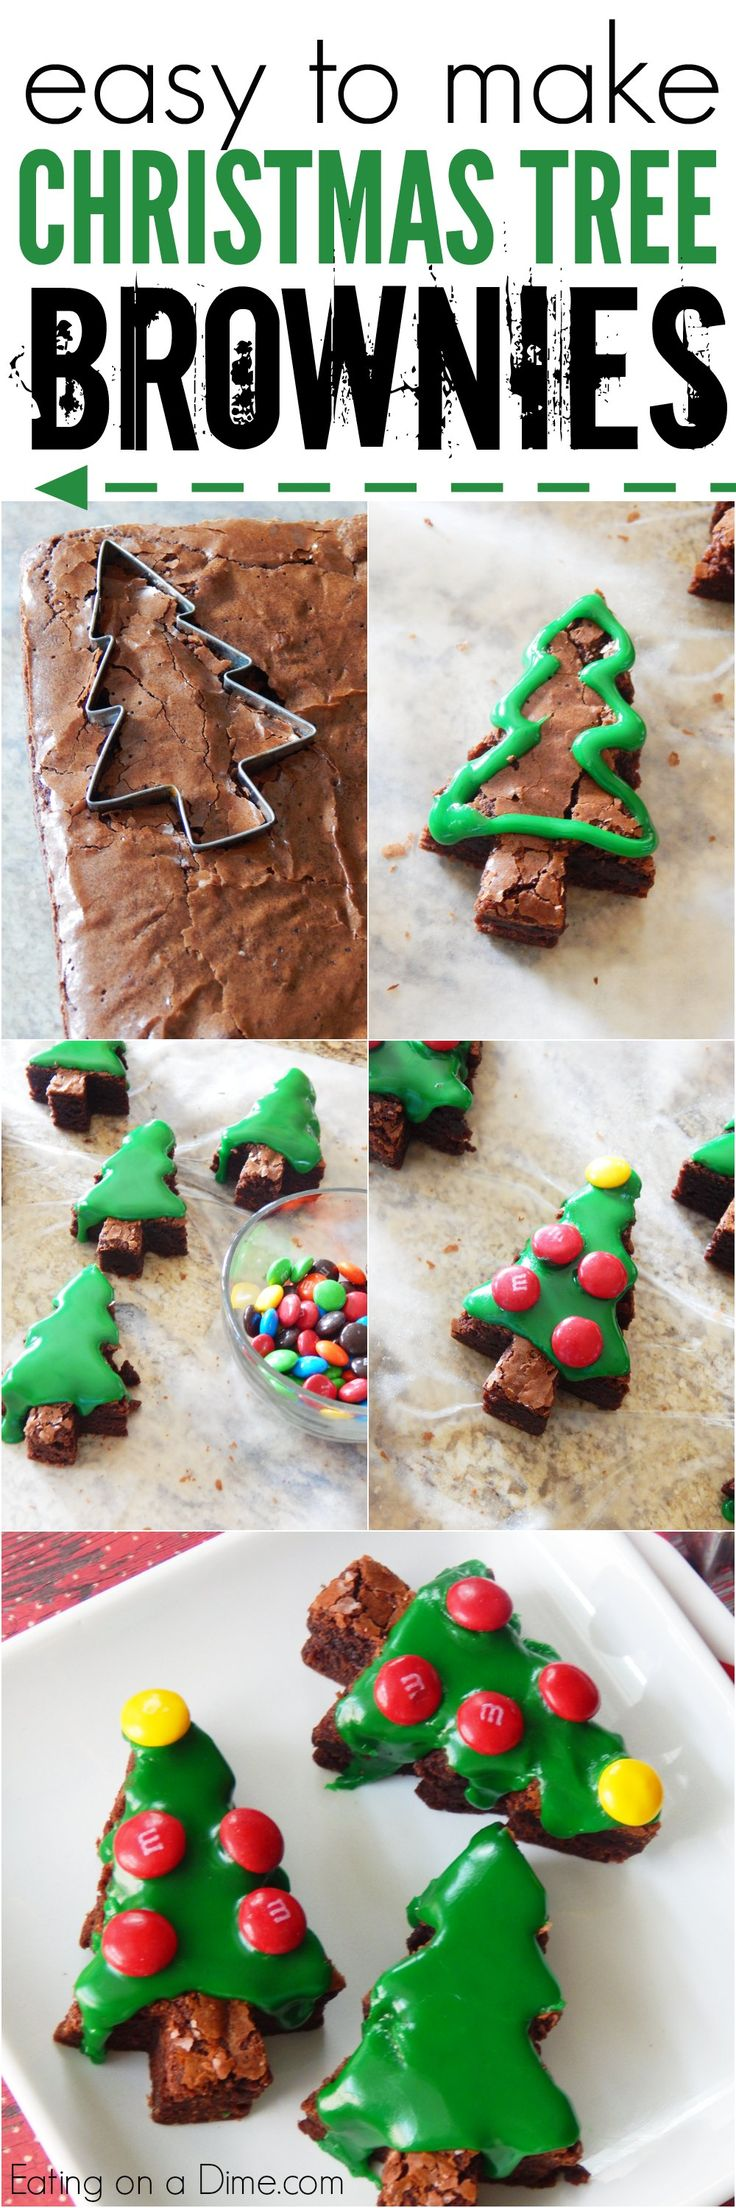 See how easy it is to make these cute Christmas tree brownies. How to make christmas tree brownies with your kids.